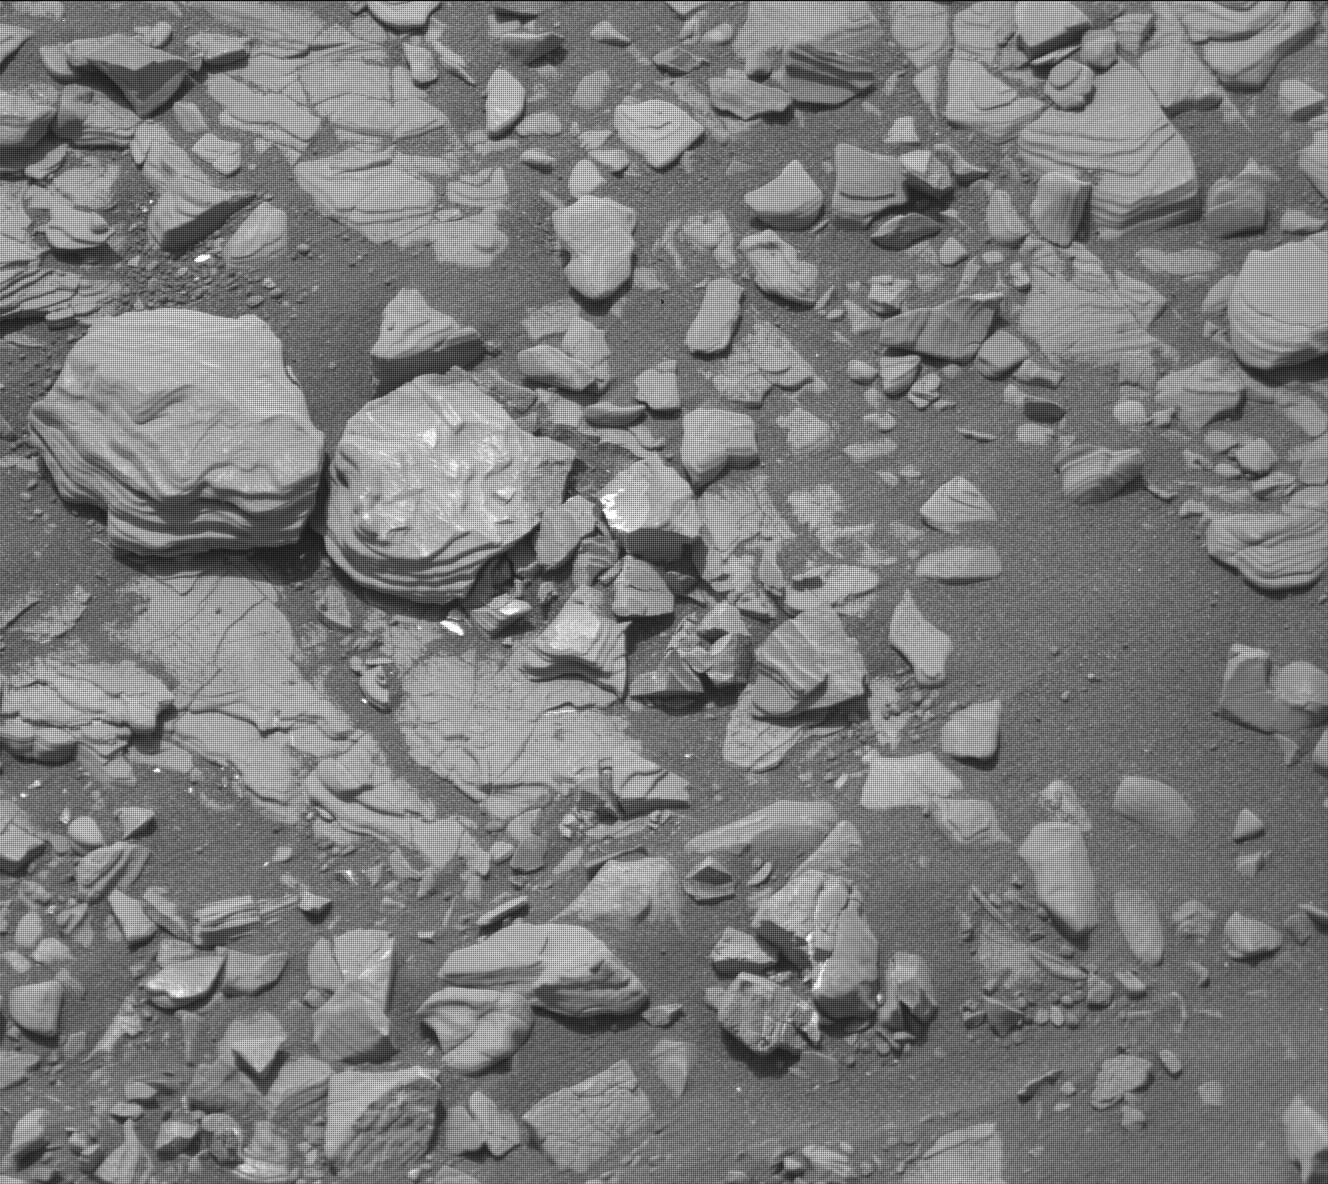 Nasa's Mars rover Curiosity acquired this image using its Mast Camera (Mastcam) on Sol 2850, at drive 2176, site number 82